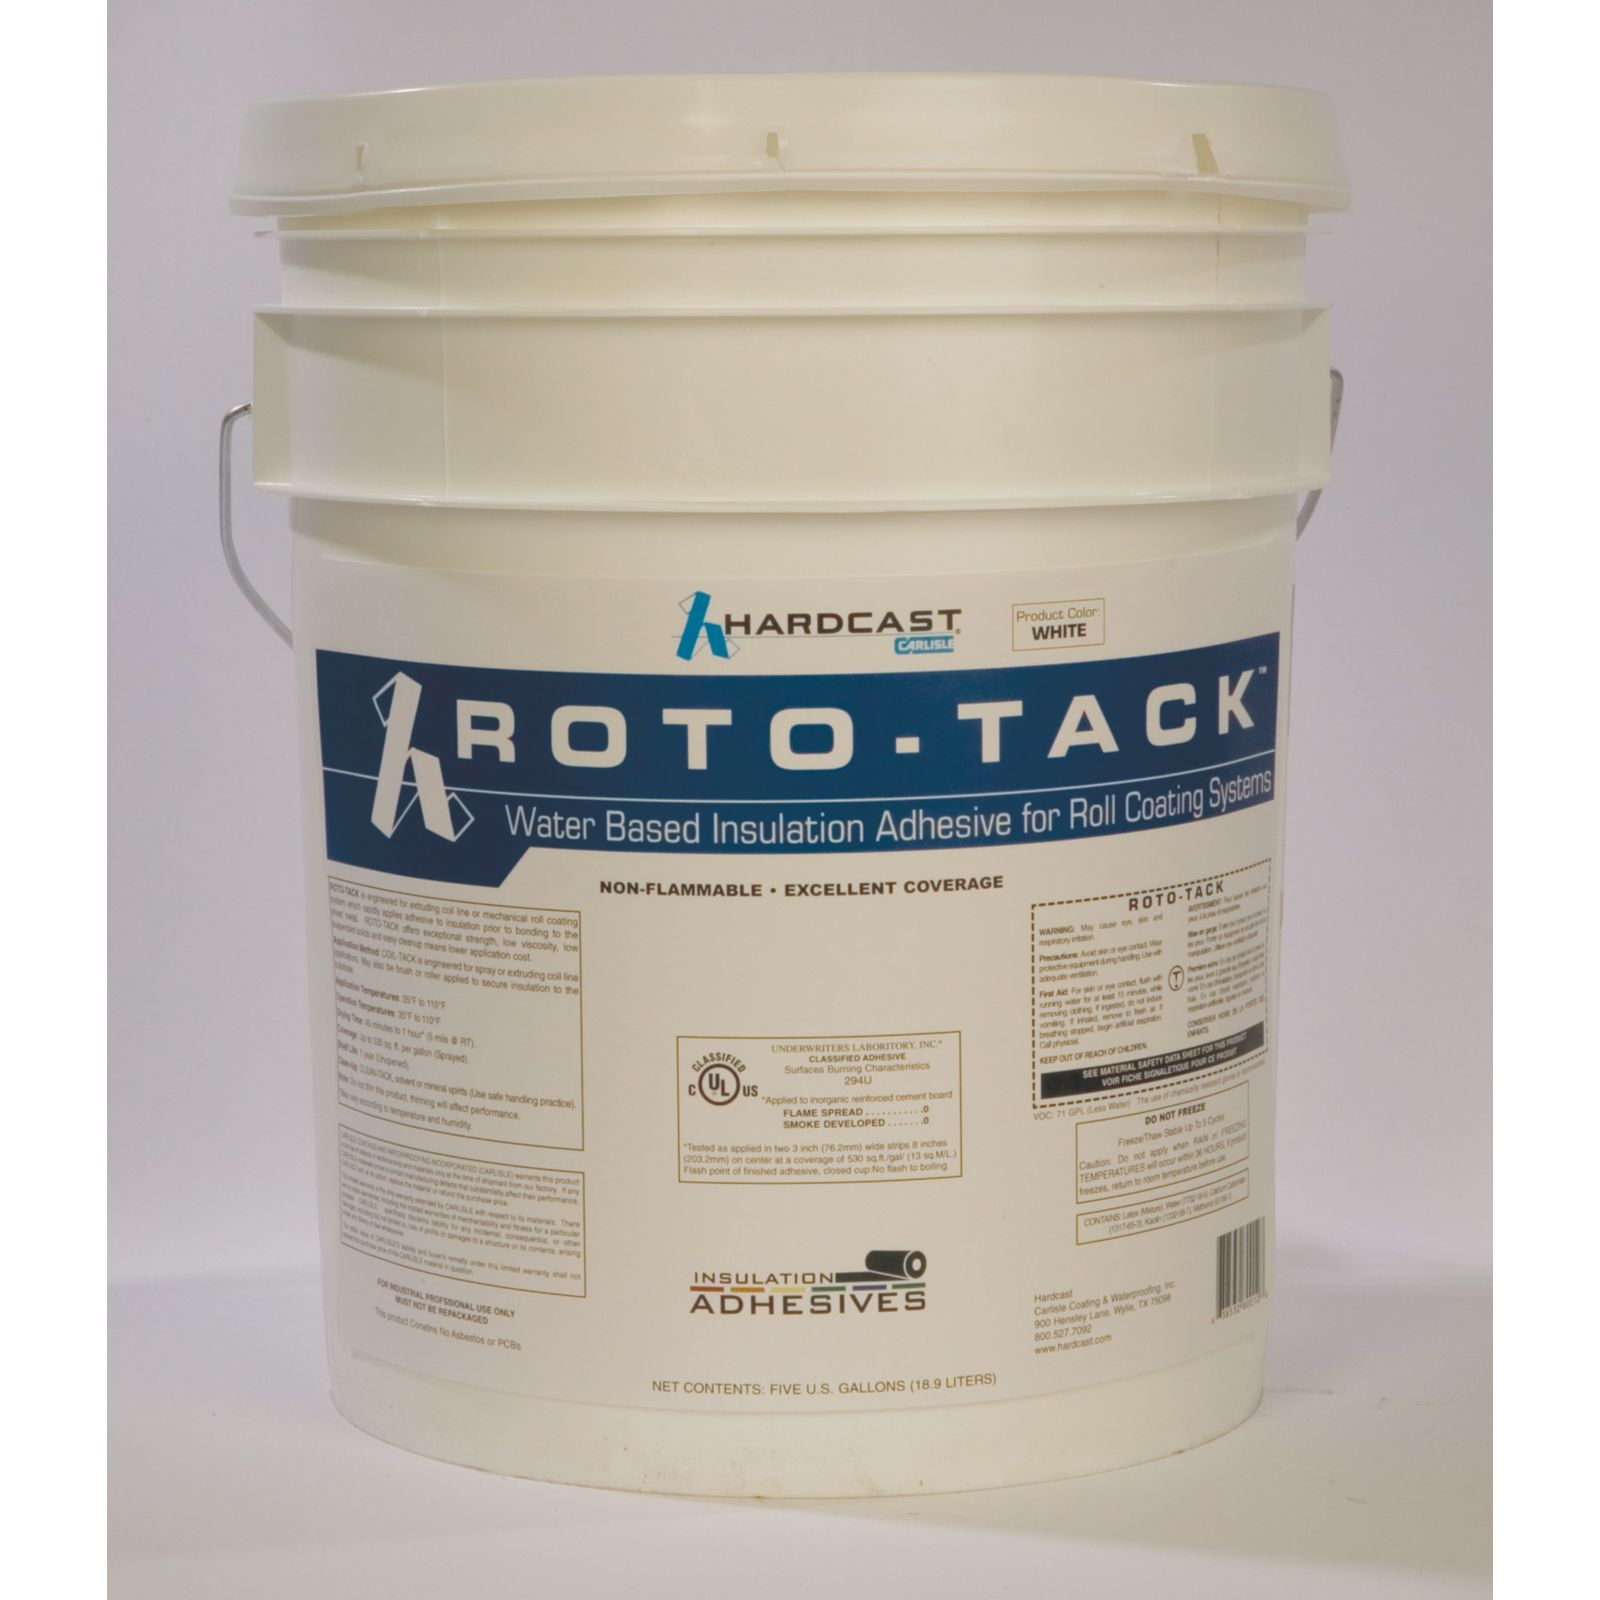 Hardcast/Carlisle 308574 - Roto-Tack Mid Tack, High Yield Water-Based Insulation Adhesive, Clear, 5 Gallon Pail